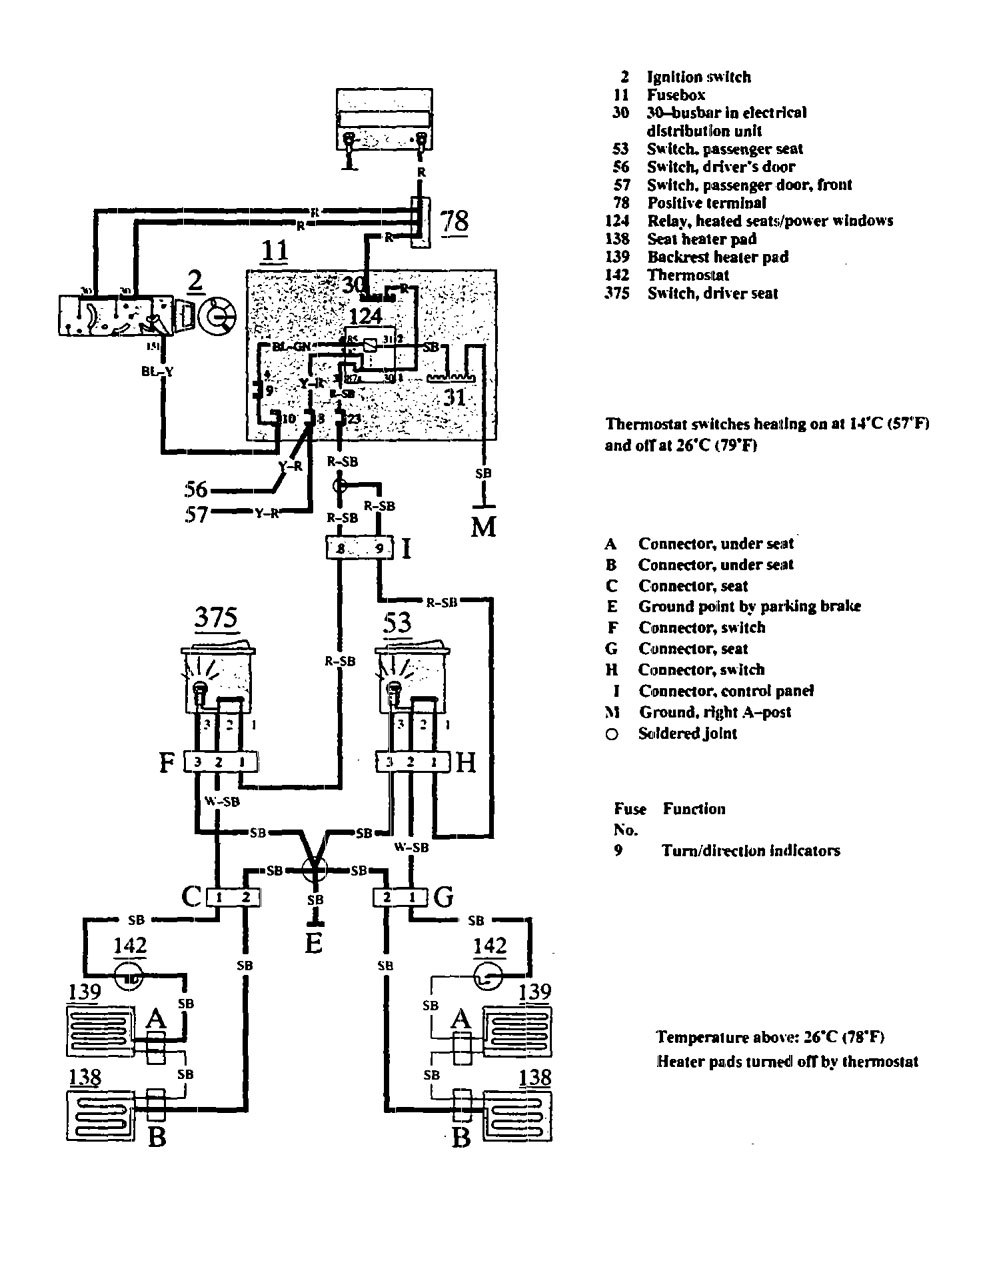 Volvo Penta Wiring Diagram | Best Wiring Liry on volvo truck wiring harness, toyota truck wiring harness, automotive wiring harness, volvo engine harness, mazda 2004 wiring harness, jeep grand wagoneer wiring harness, nissan 240sx wiring harness, international scout ii wiring harness, volvo 240 alternator wiring, volvo 240 headlight wiring, ford f 150 wiring harness, volvo 1800 wiring harness, jeep cj5 wiring harness, mazda rx8 wiring harness, chevy wiring harness, ford bronco wiring harness, mazda rx7 wiring harness, mustang wiring harness, volvo s40 wiring harness, volvo 240 starter wiring,